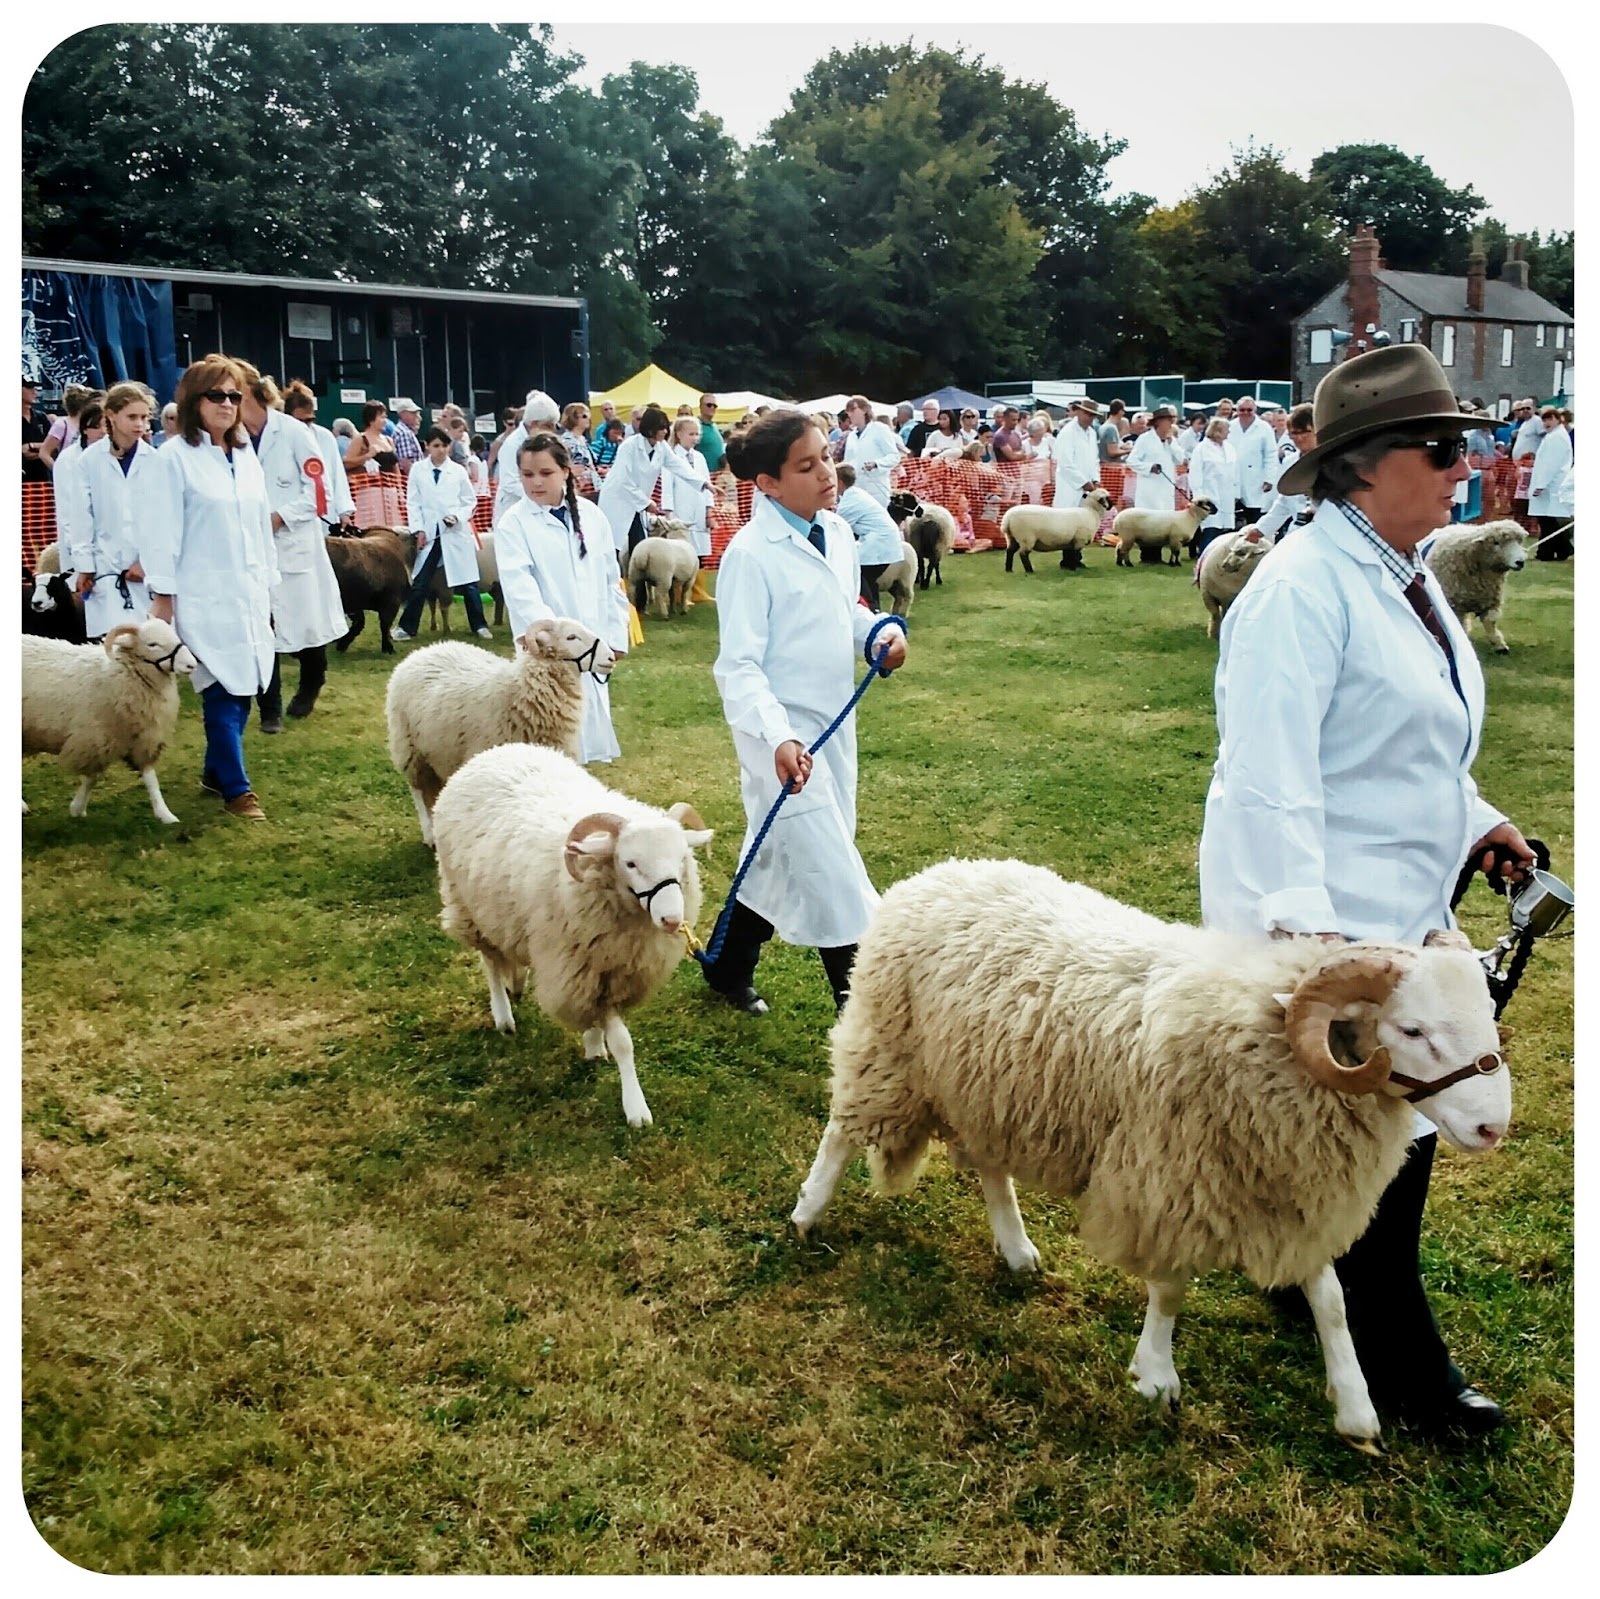 The Sheep Parade, Findon Sheep Fair 2014